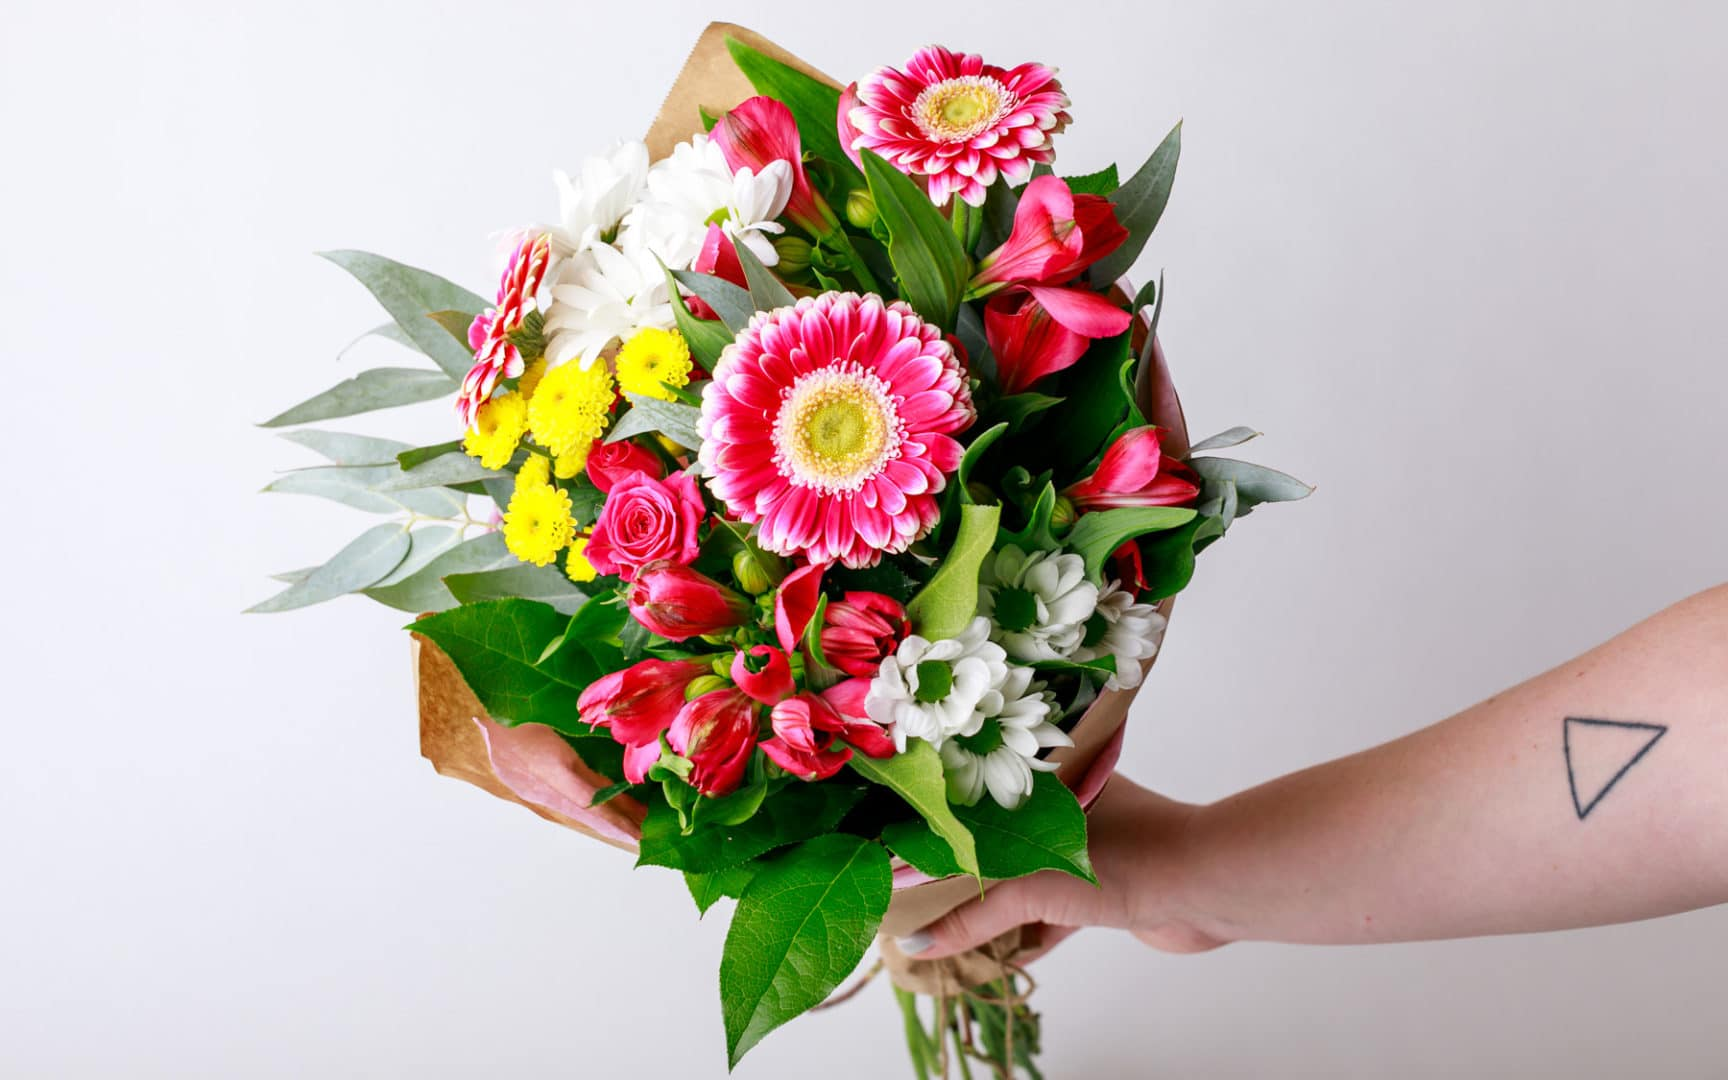 person holding a pink floral arrangement for Mother's Day from Zupan's Markets